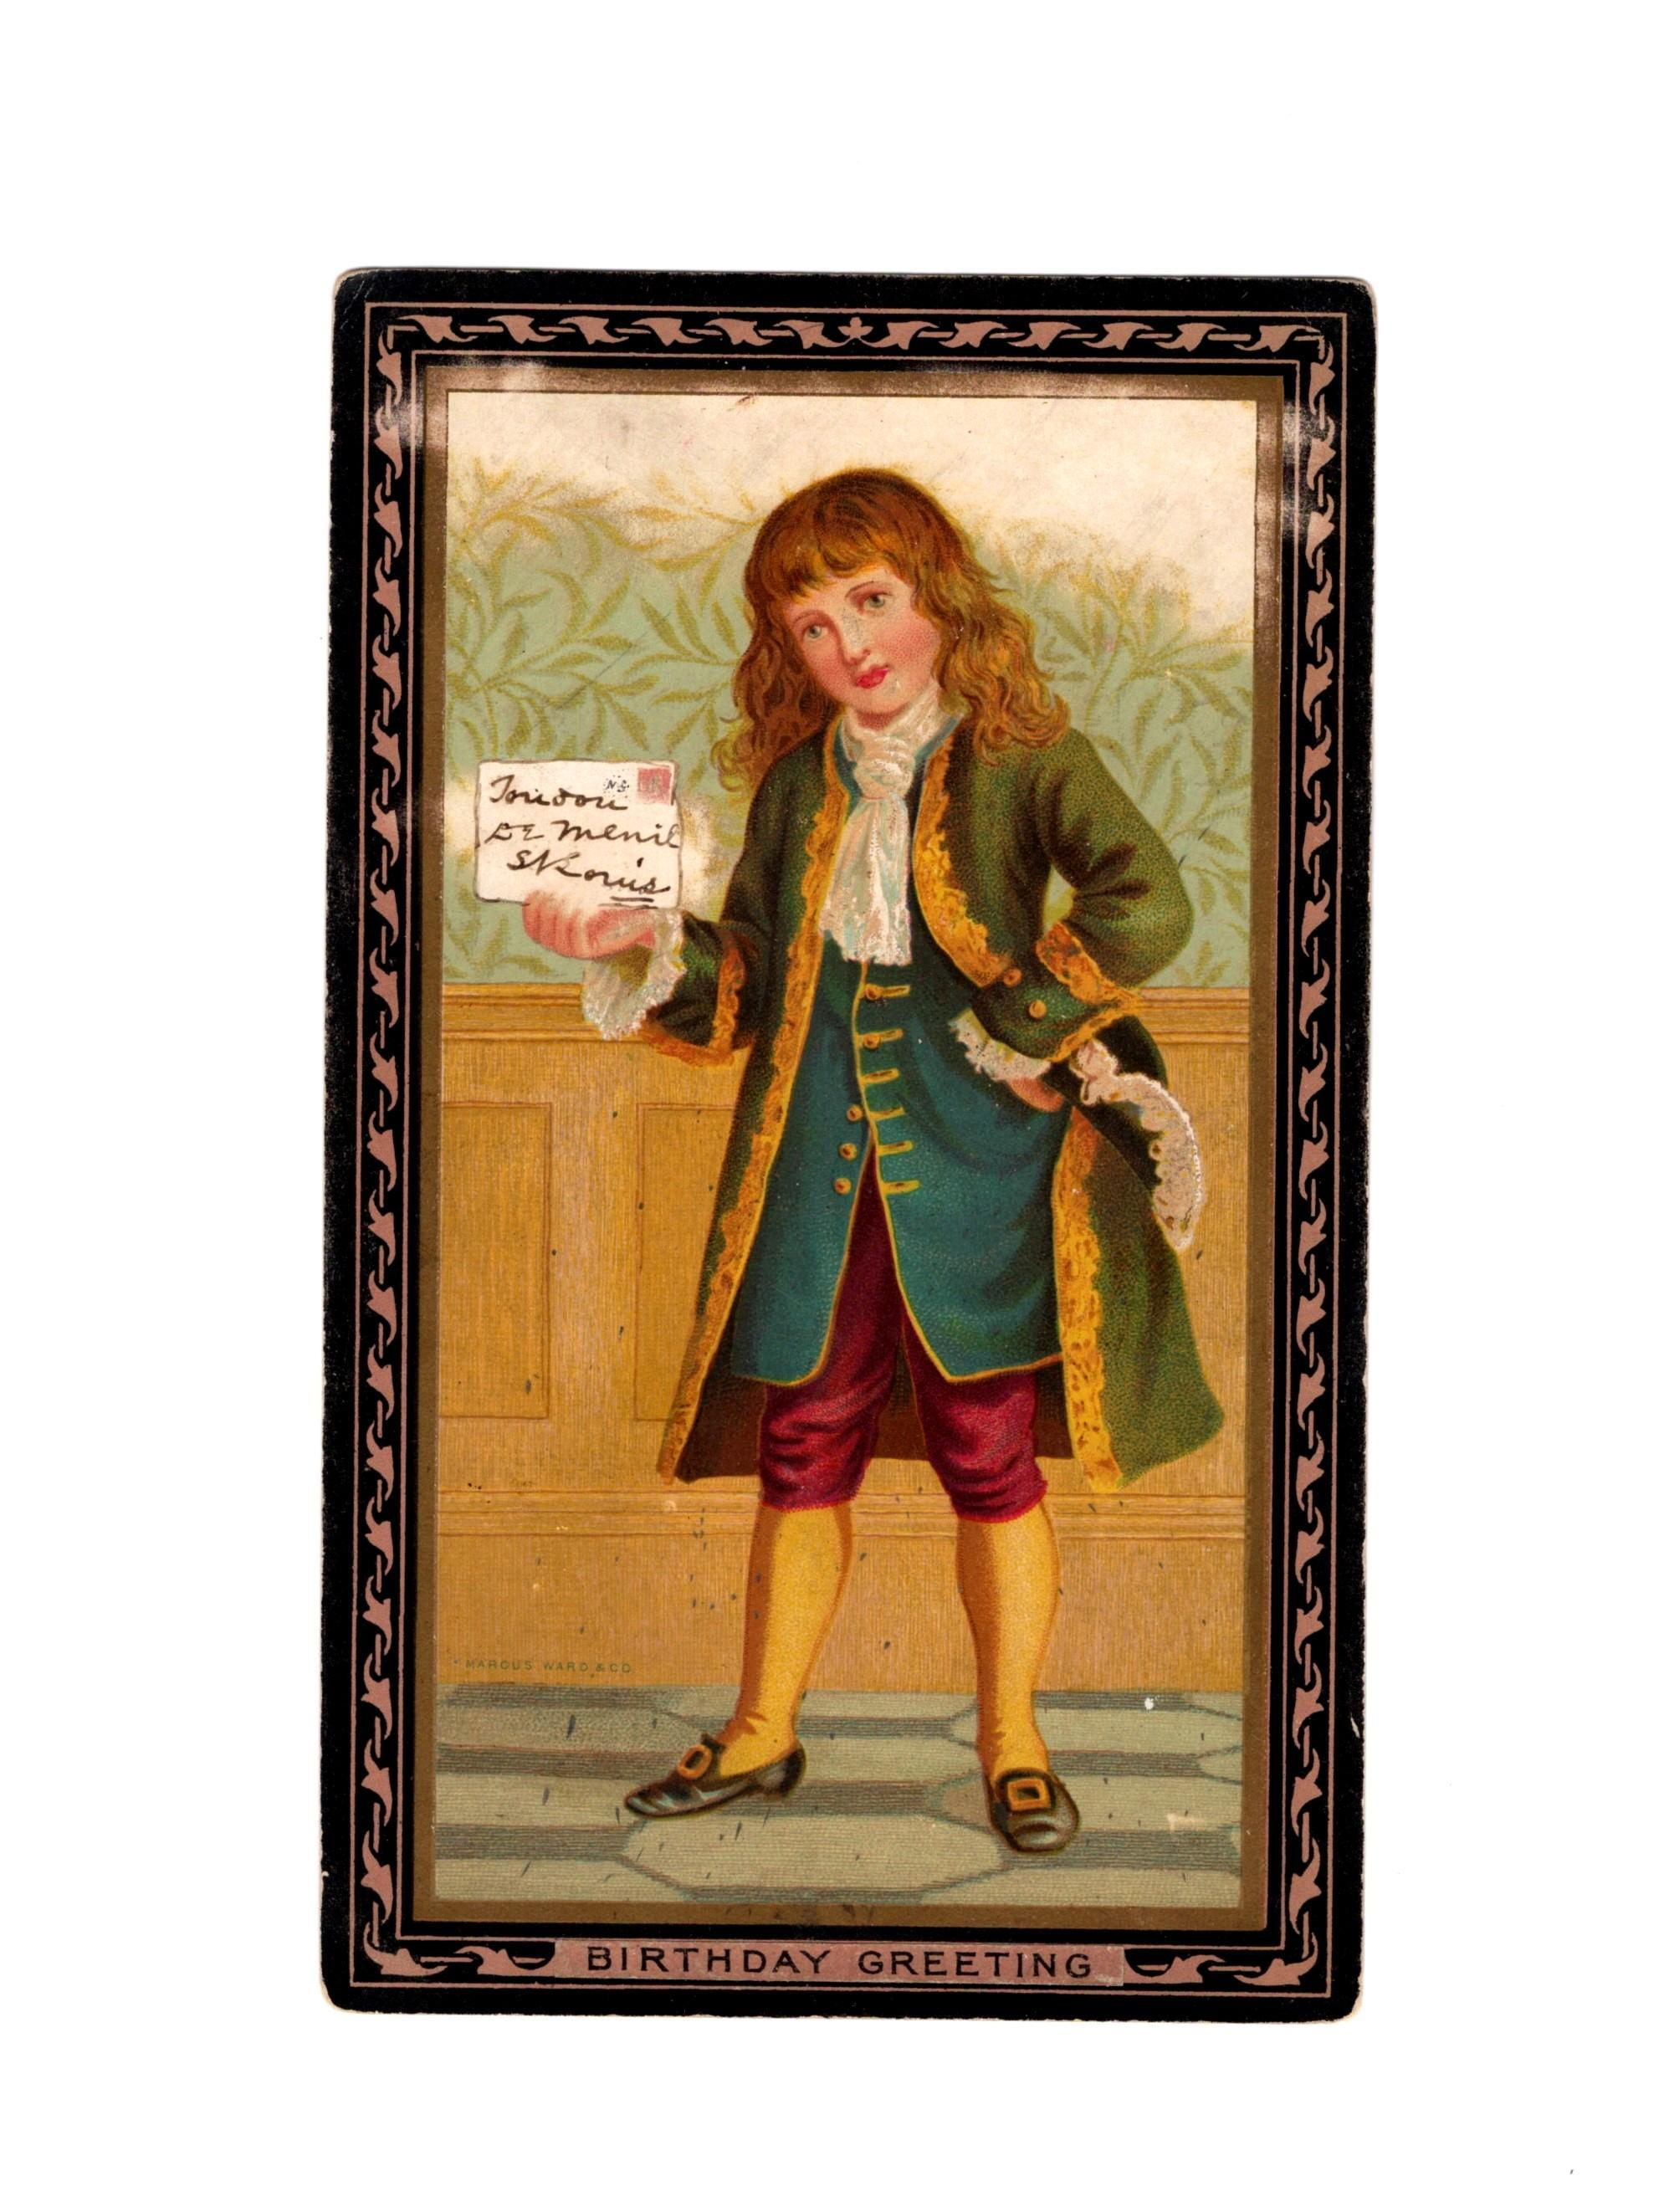 1890s Victorian Birthday Colonial Boy Greeting Card Album Scrap - Saint Louis, Missouri